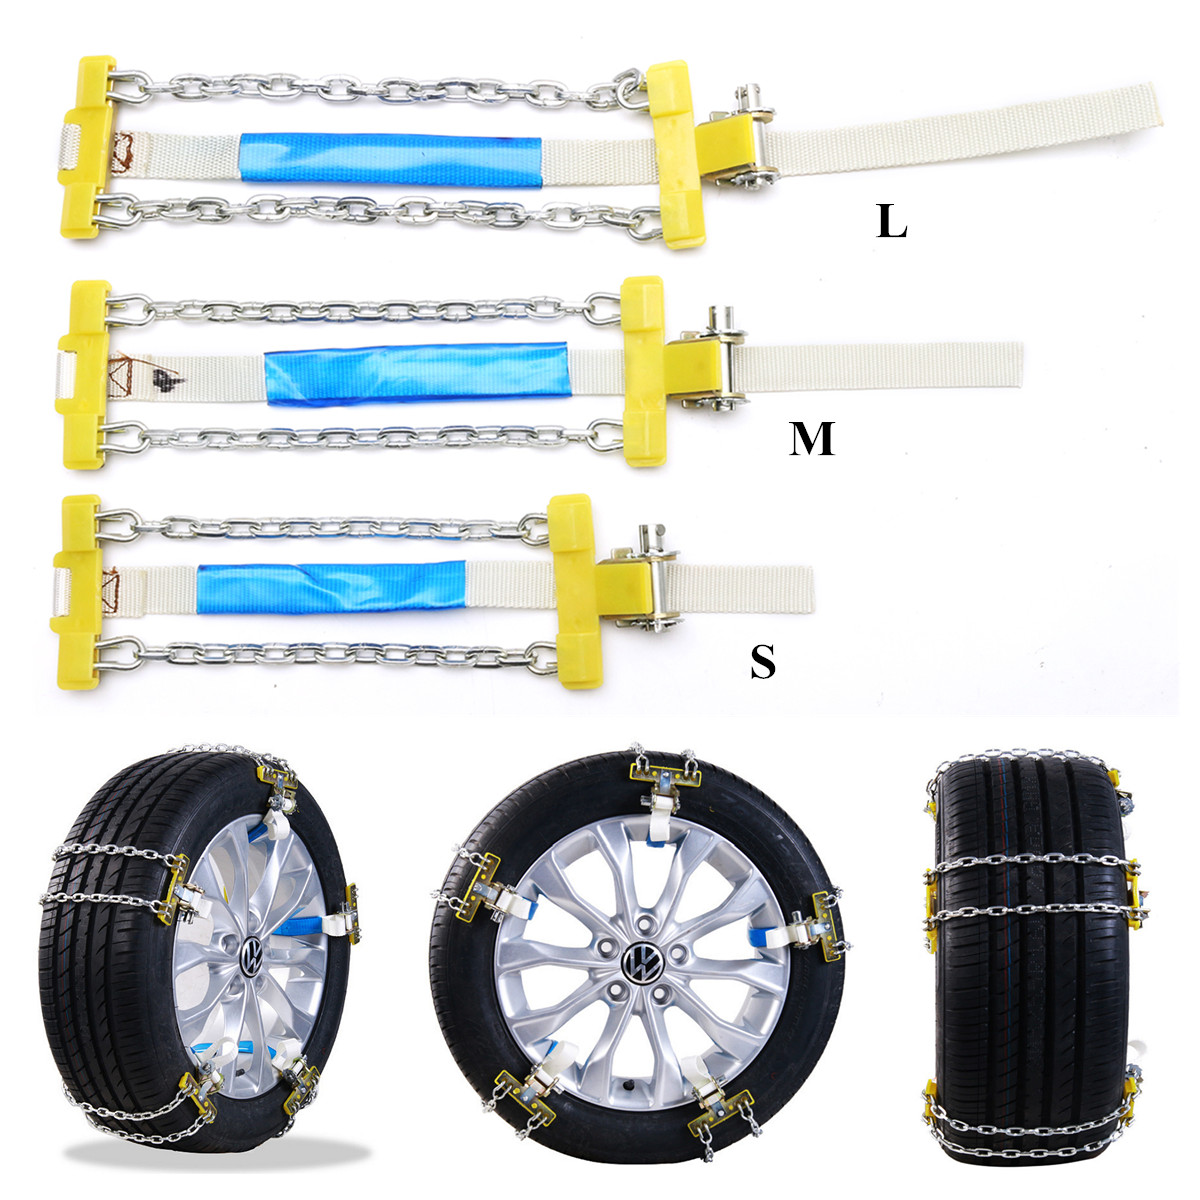 Universal Car Auto Anti-skid Steel Chains Skid Belt Snow Mud San